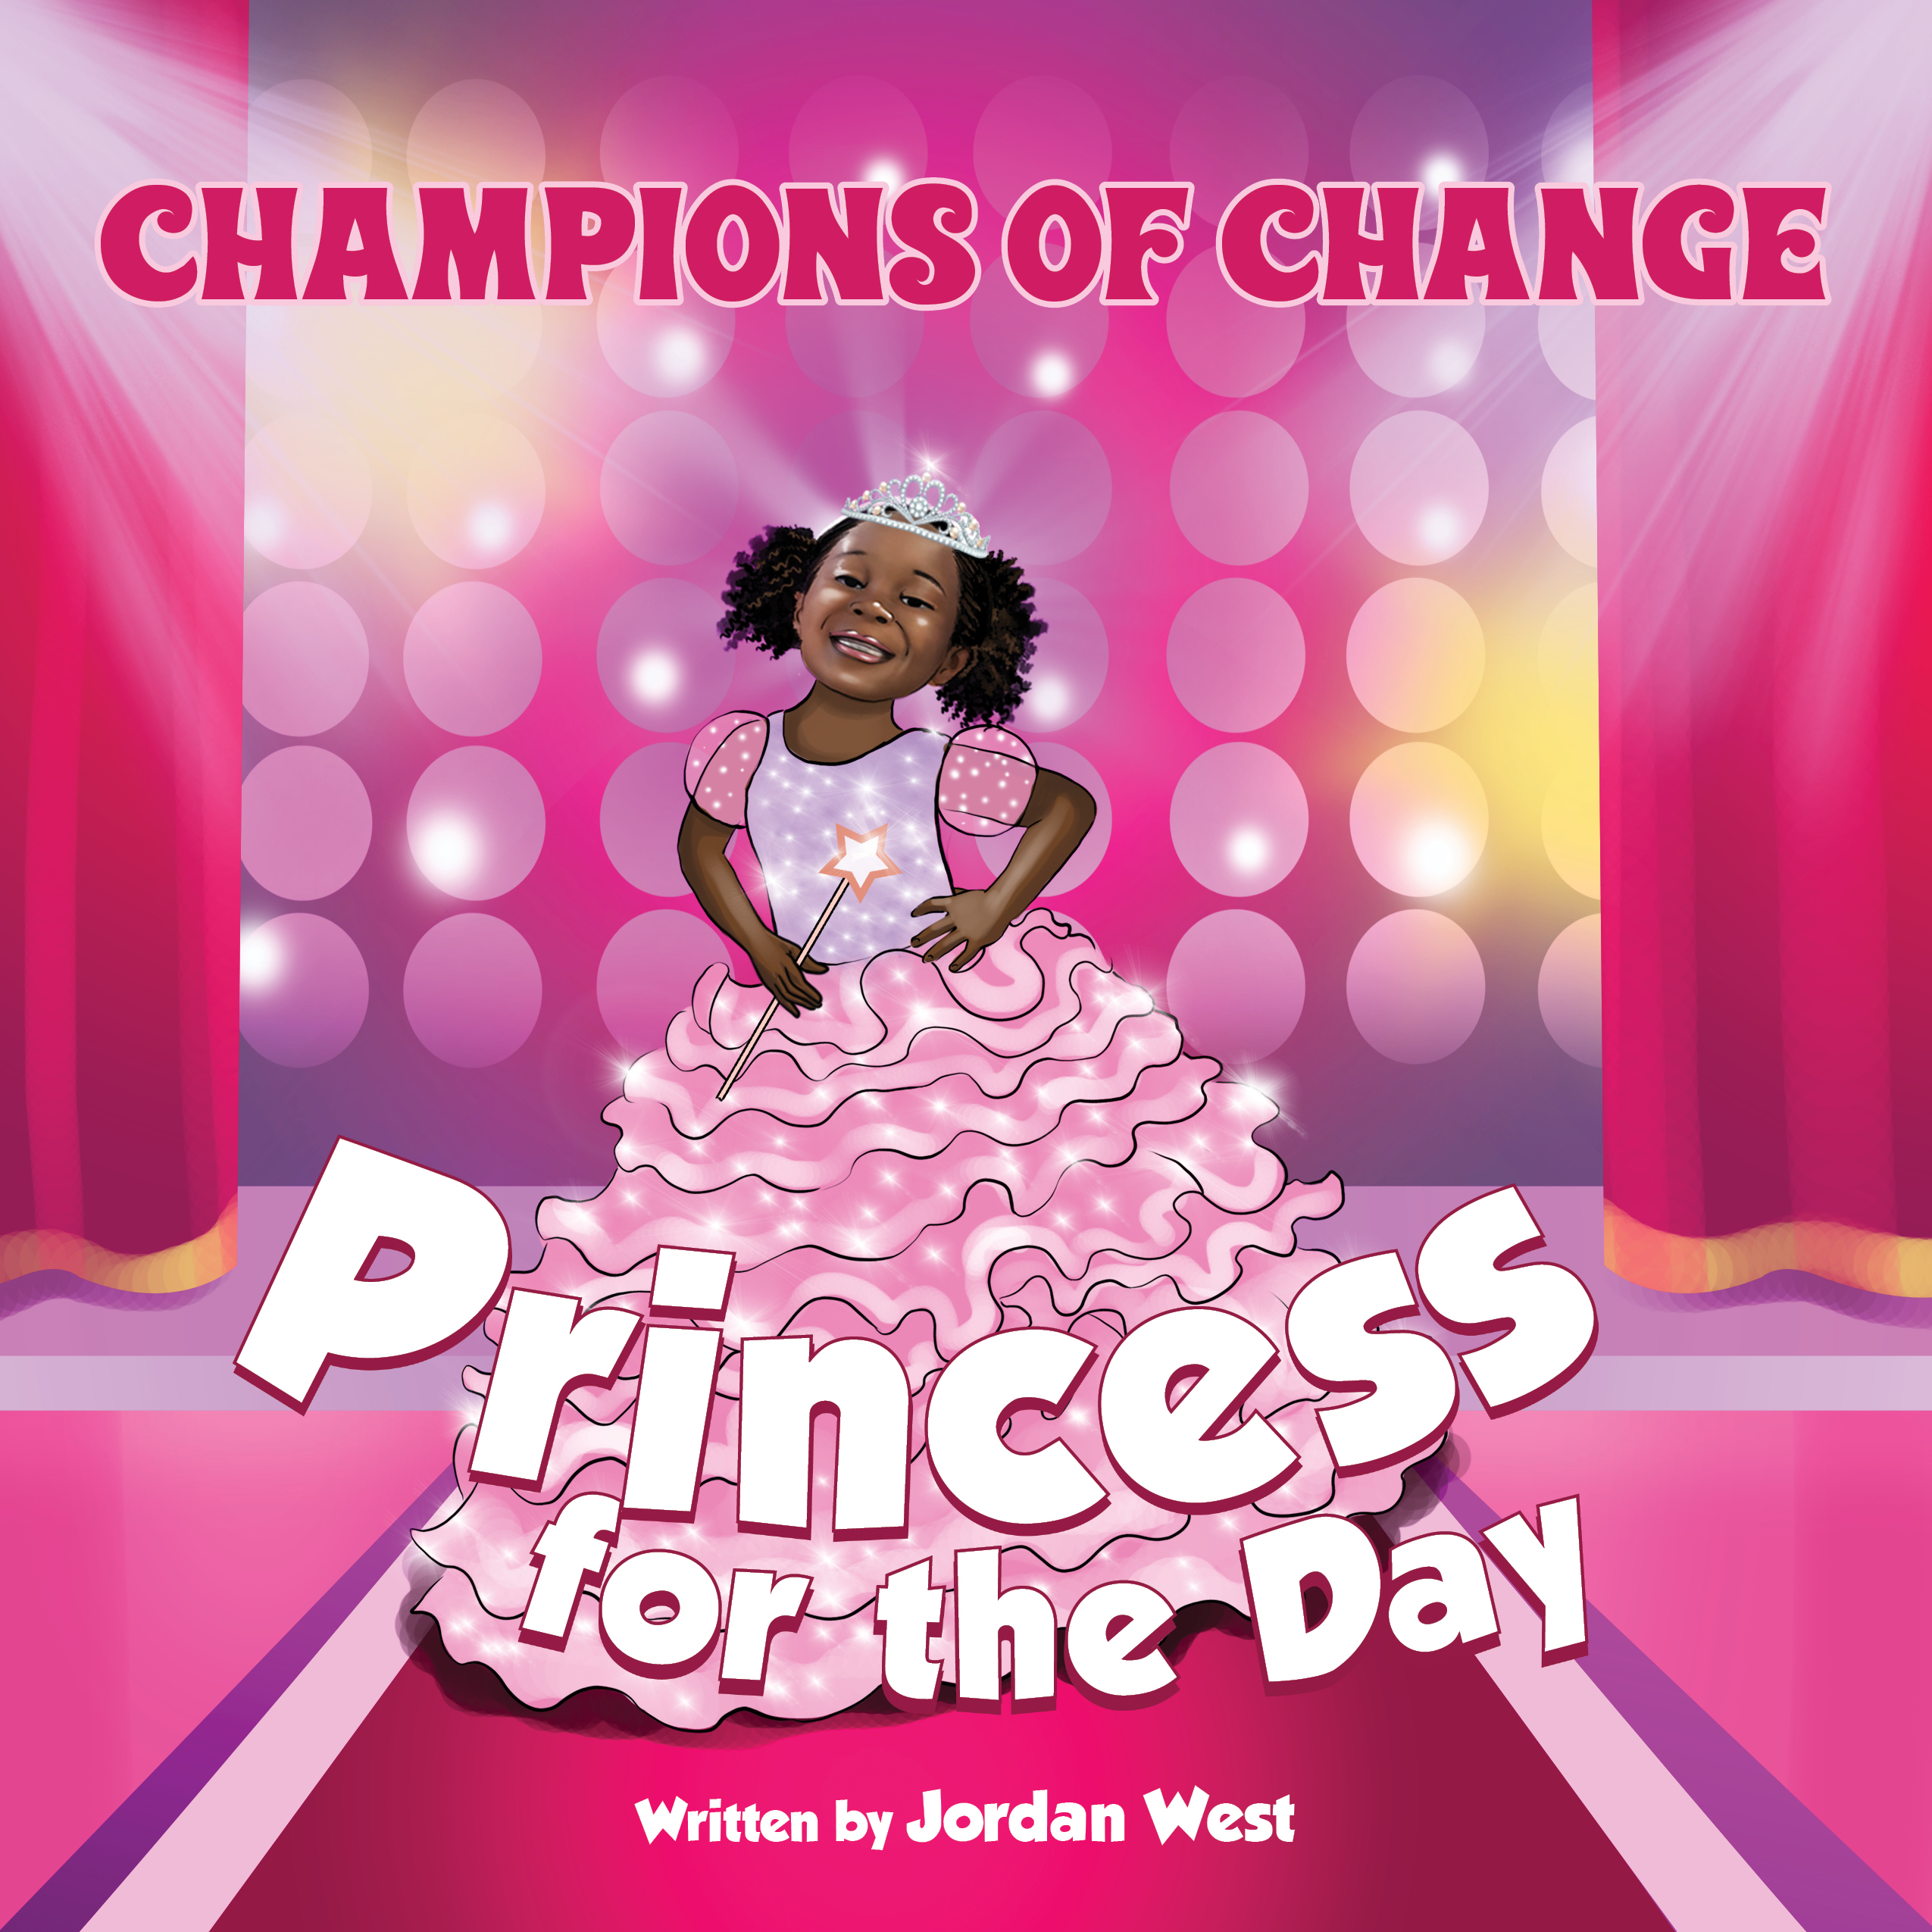 champions-of-chang_princess-for-the-day_cover1